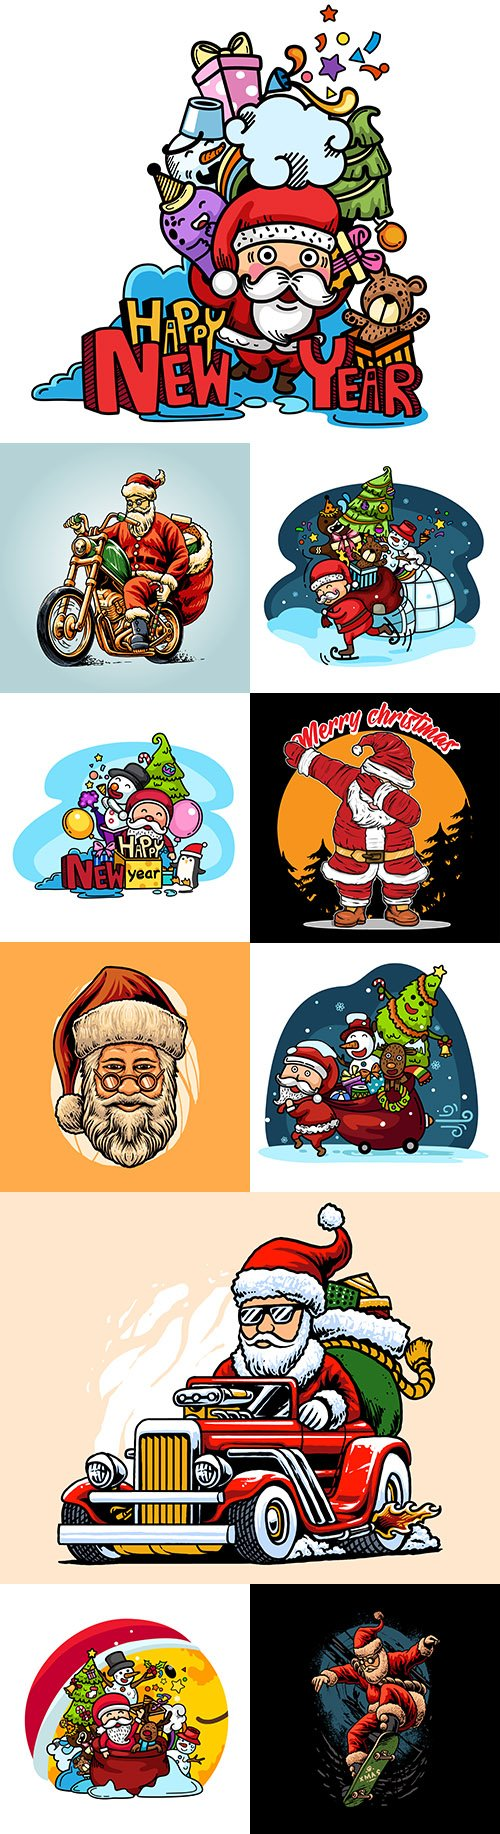 Santa Claus drawing with Christmas party and skateboarding